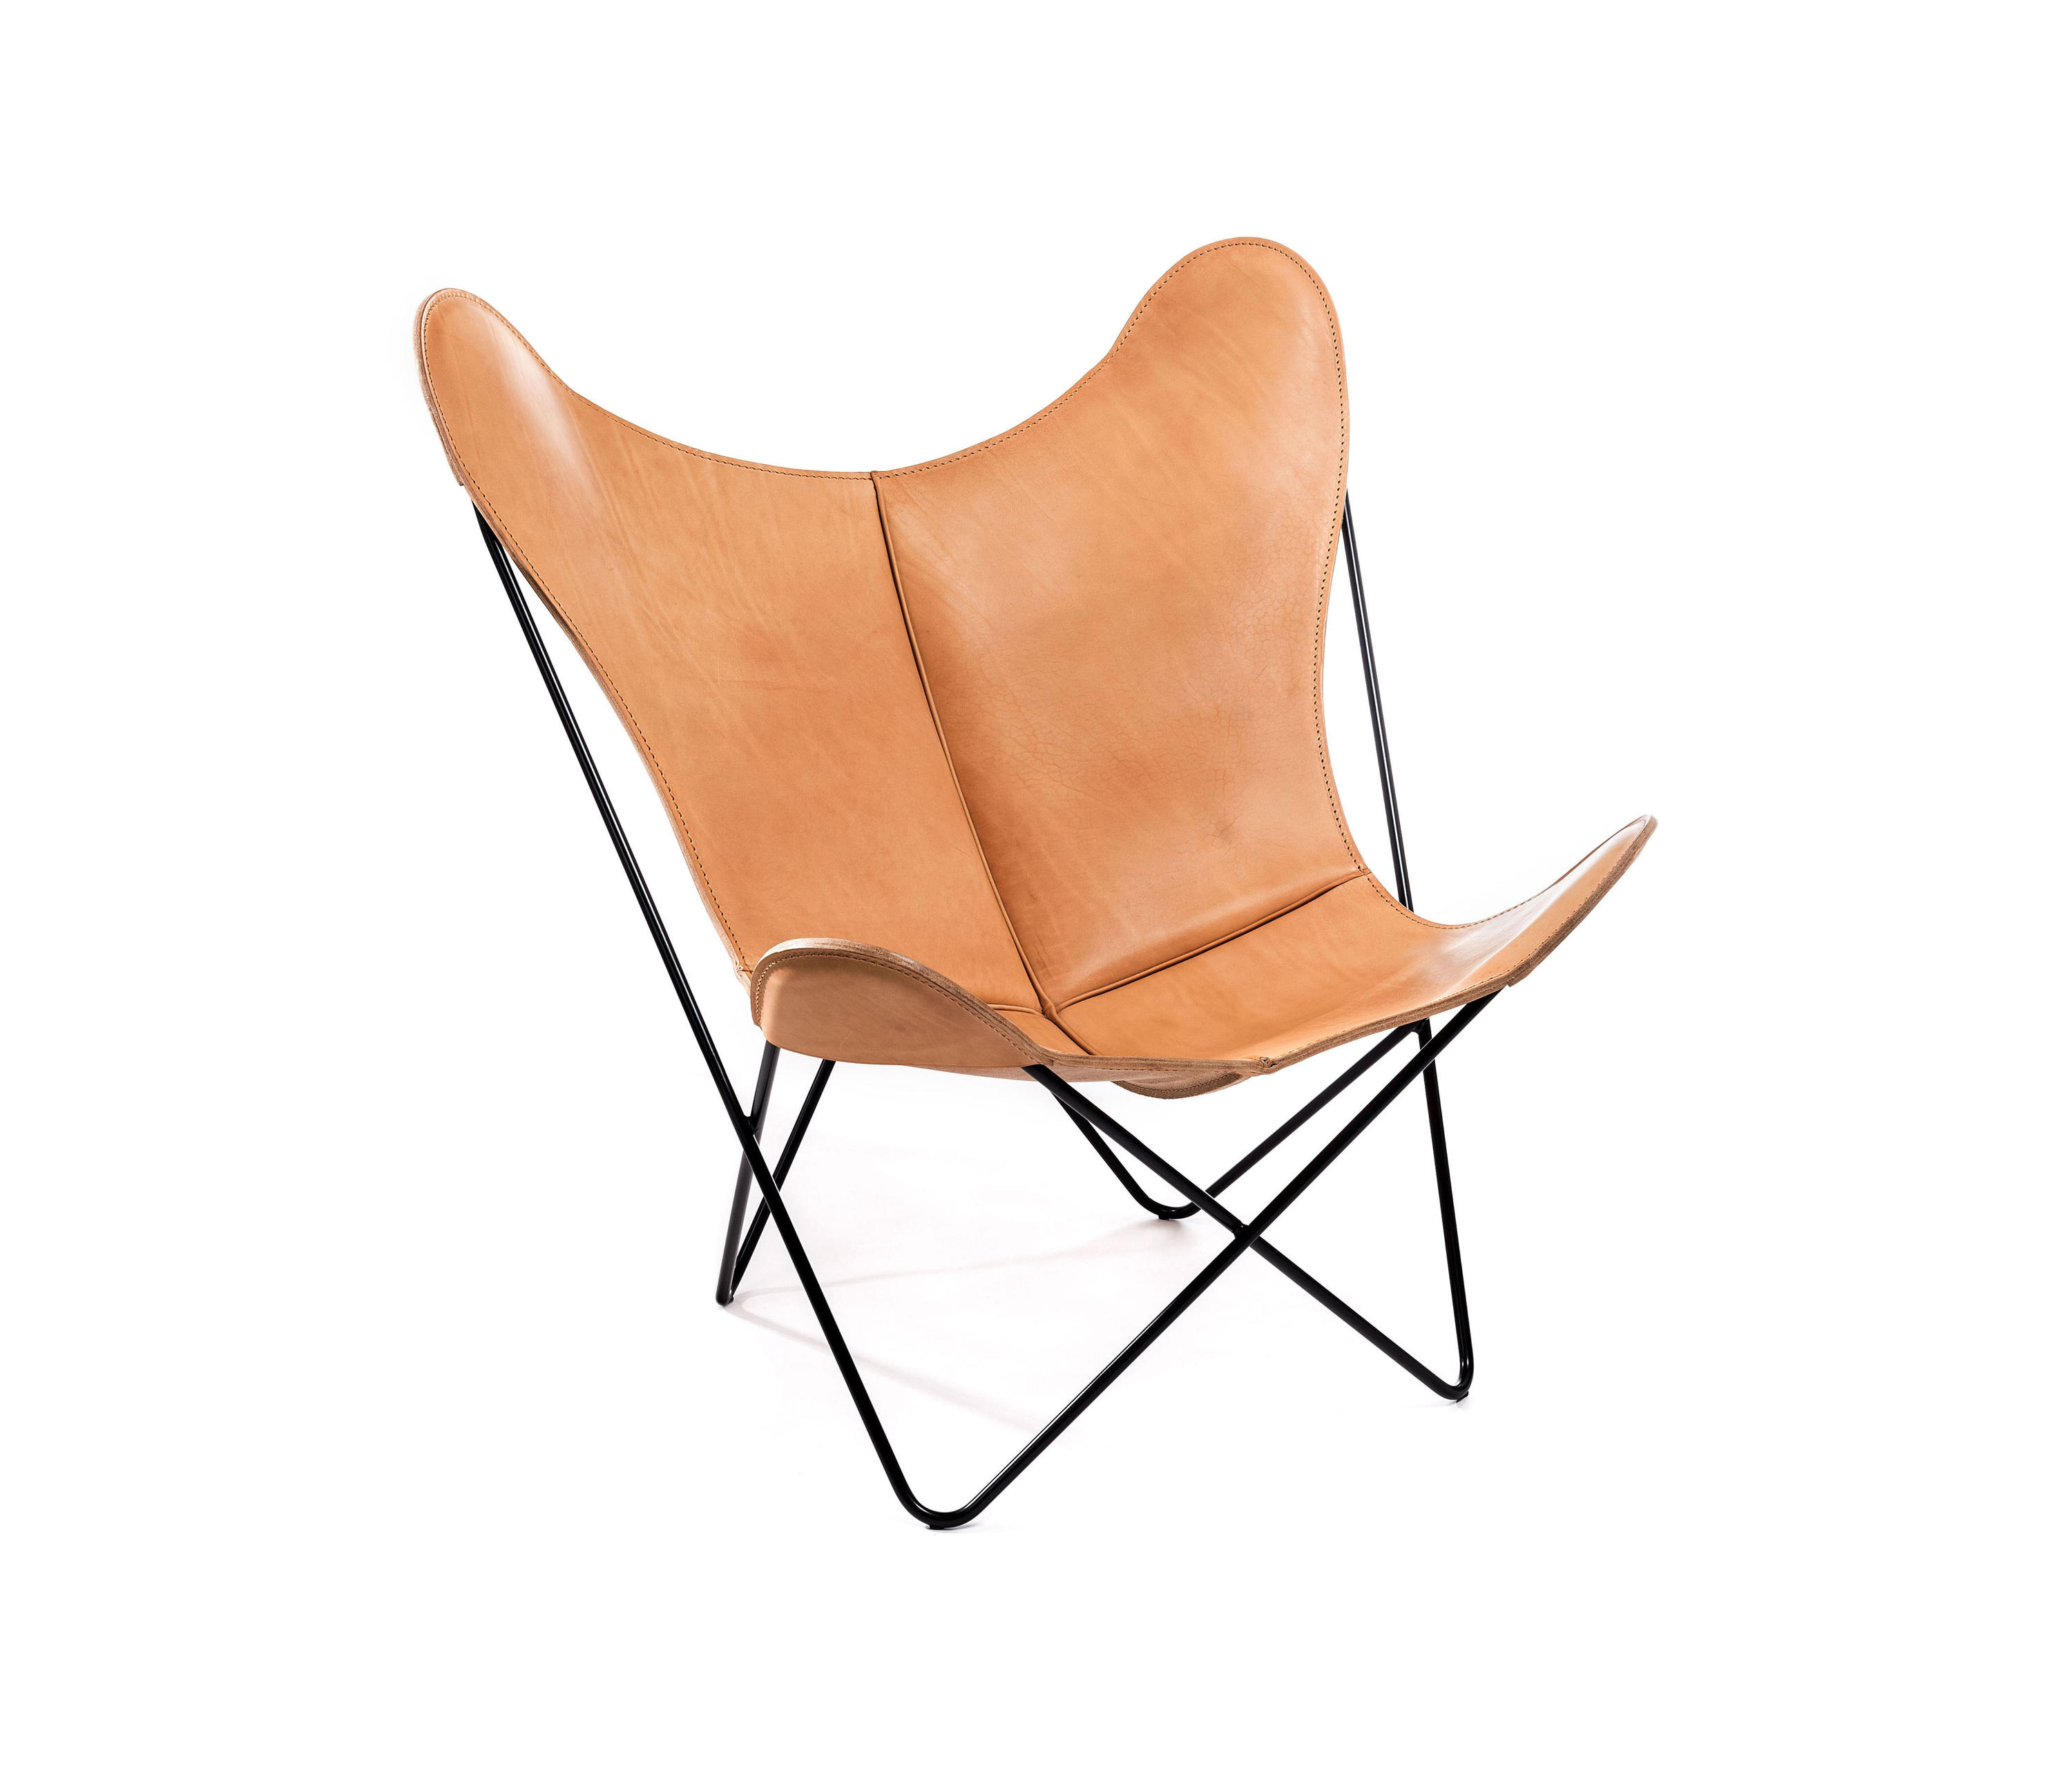 hardoy butterfly chair sattel leder natur lounge chairs from manufakturplus architonic. Black Bedroom Furniture Sets. Home Design Ideas